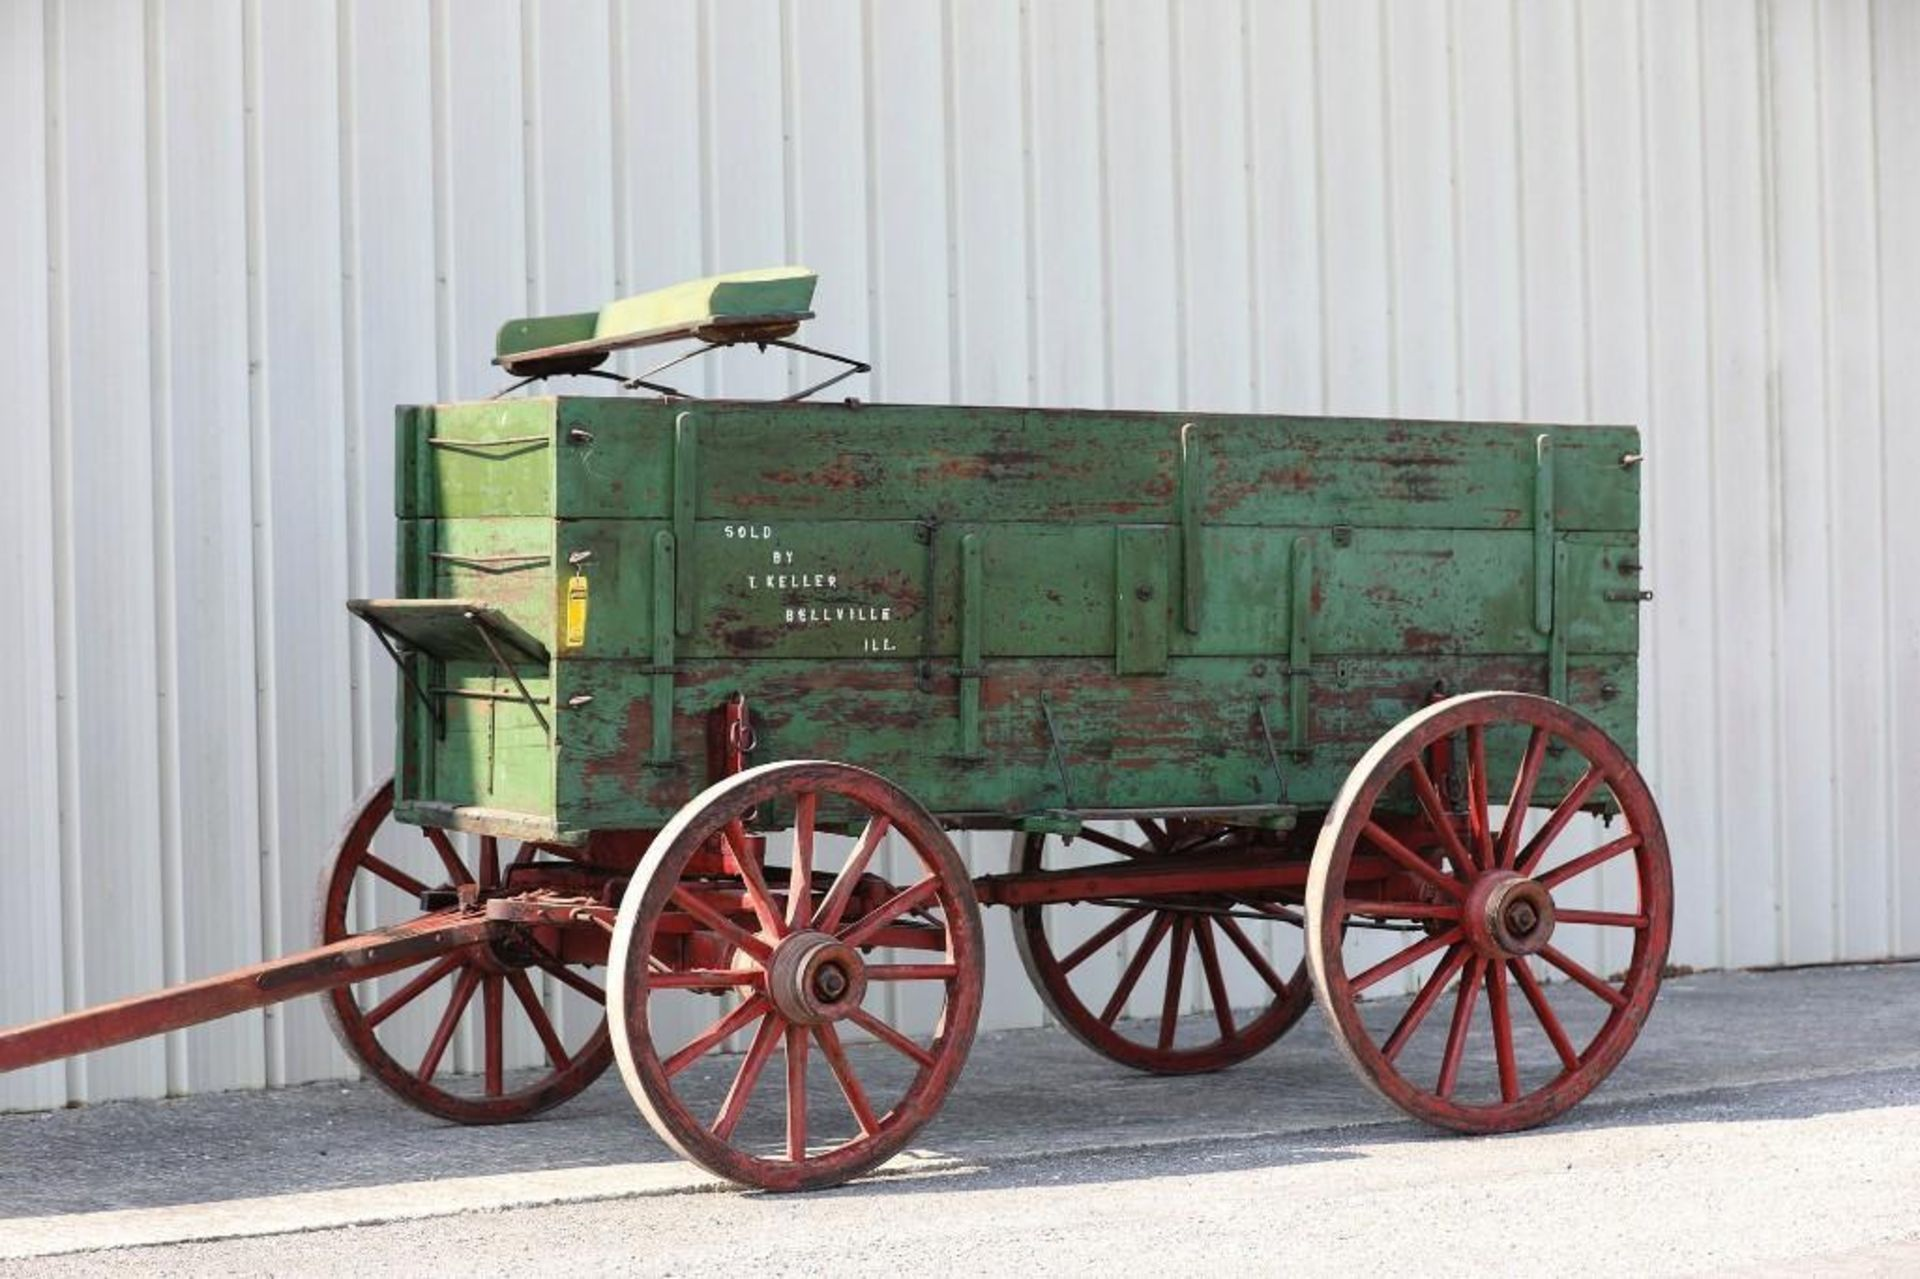 T. KELLER 3-Board Box Wagon, Manufactured in Belleville, Illinois. Seat will sell separate. - Image 2 of 2